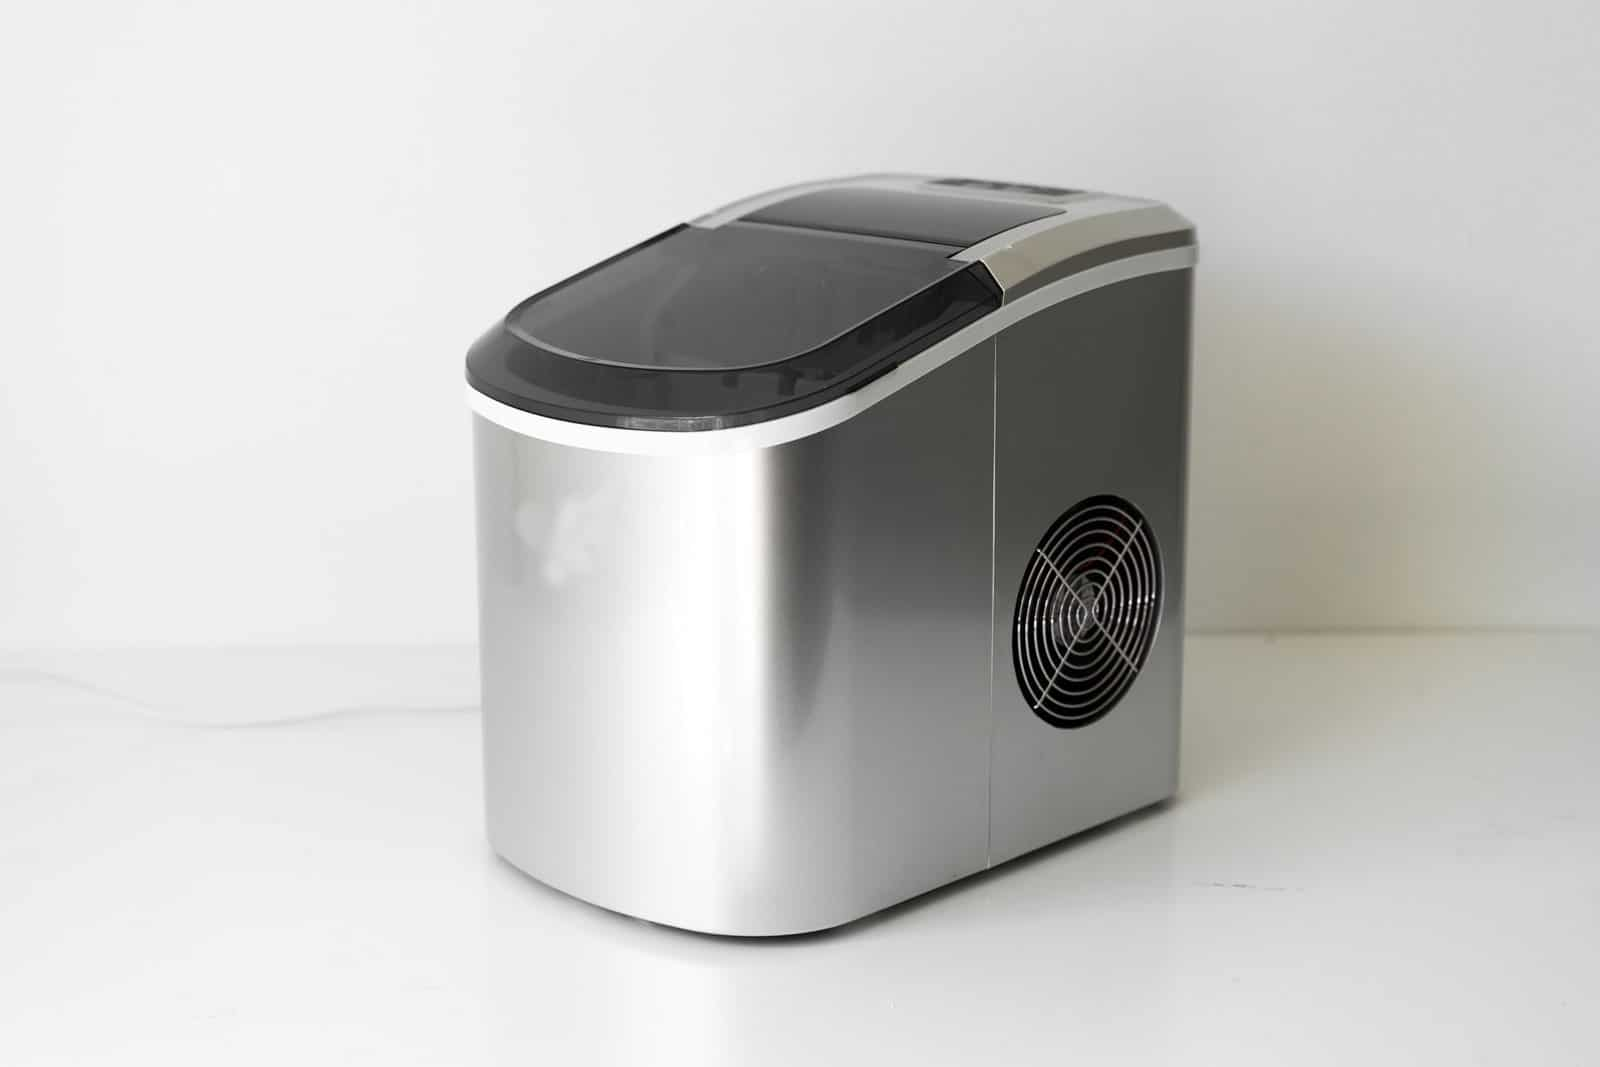 portable freezer, portable freezer small